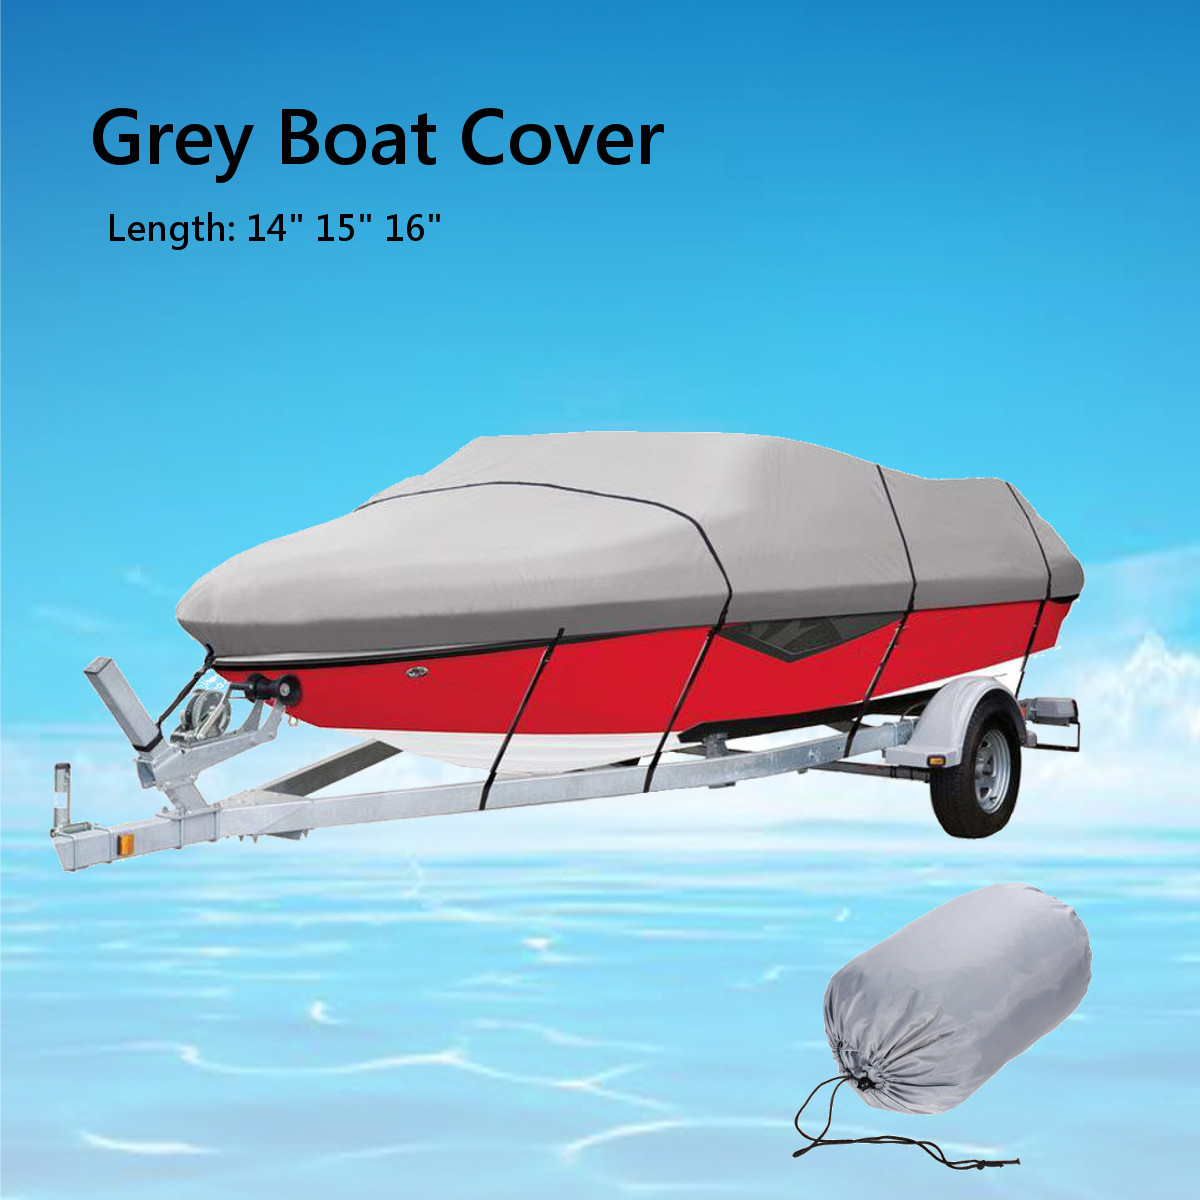 530X290cm V Hull Trailerable Boat Cover Waterproof Fishing Ski Bass for Speedboat V shape Grey